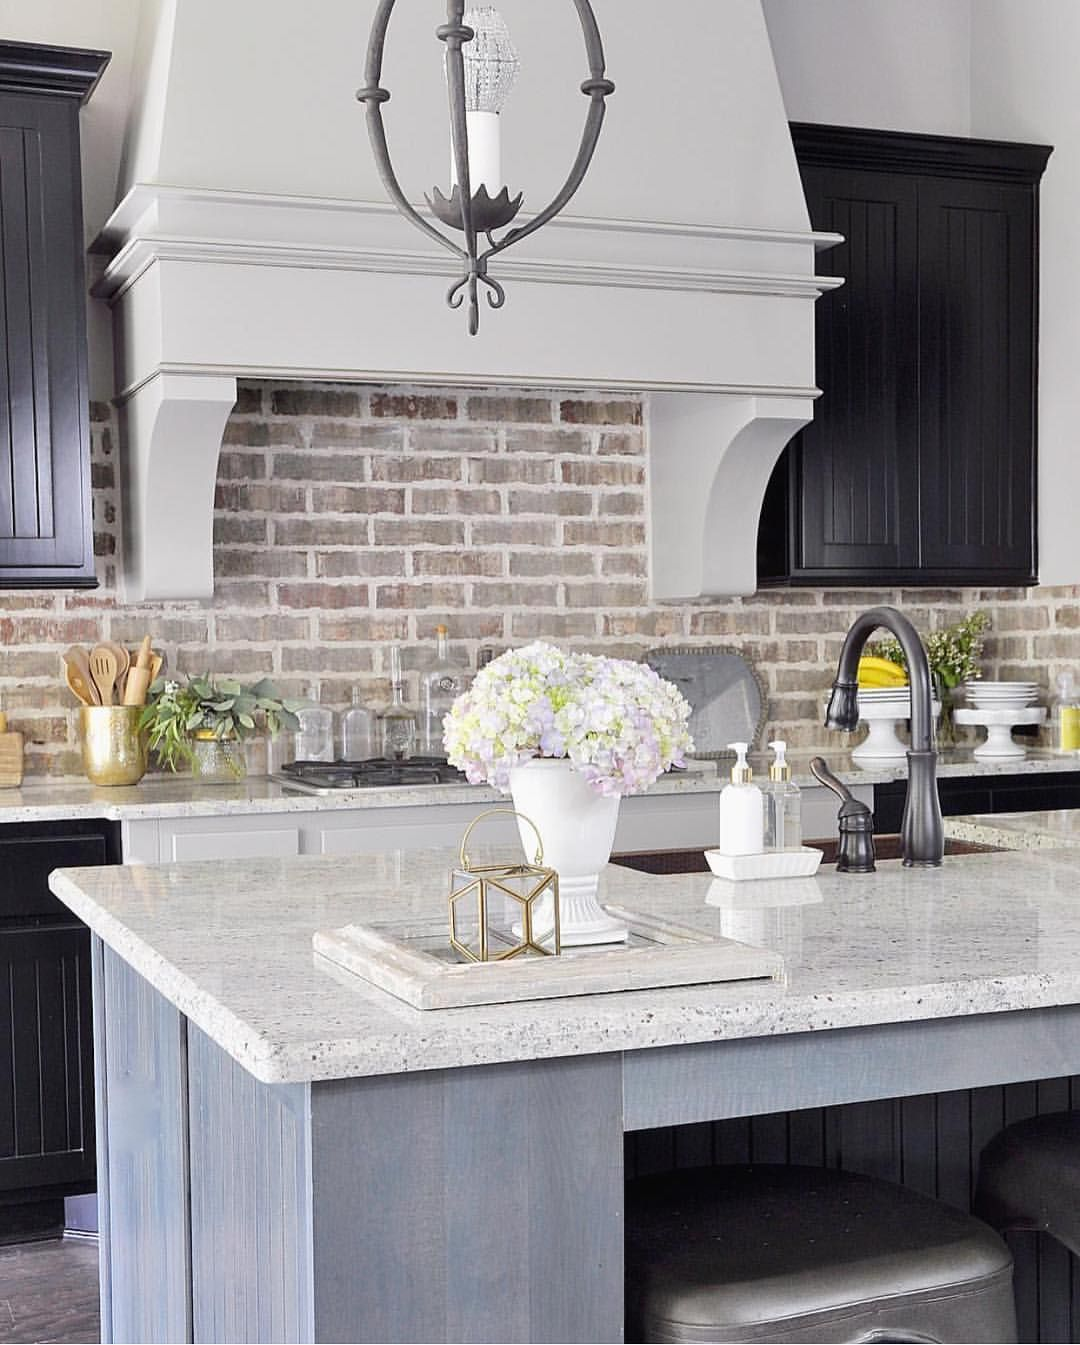 Merveilleux Pretty Modern Rustic Kitchen With Brick Style Backsplash